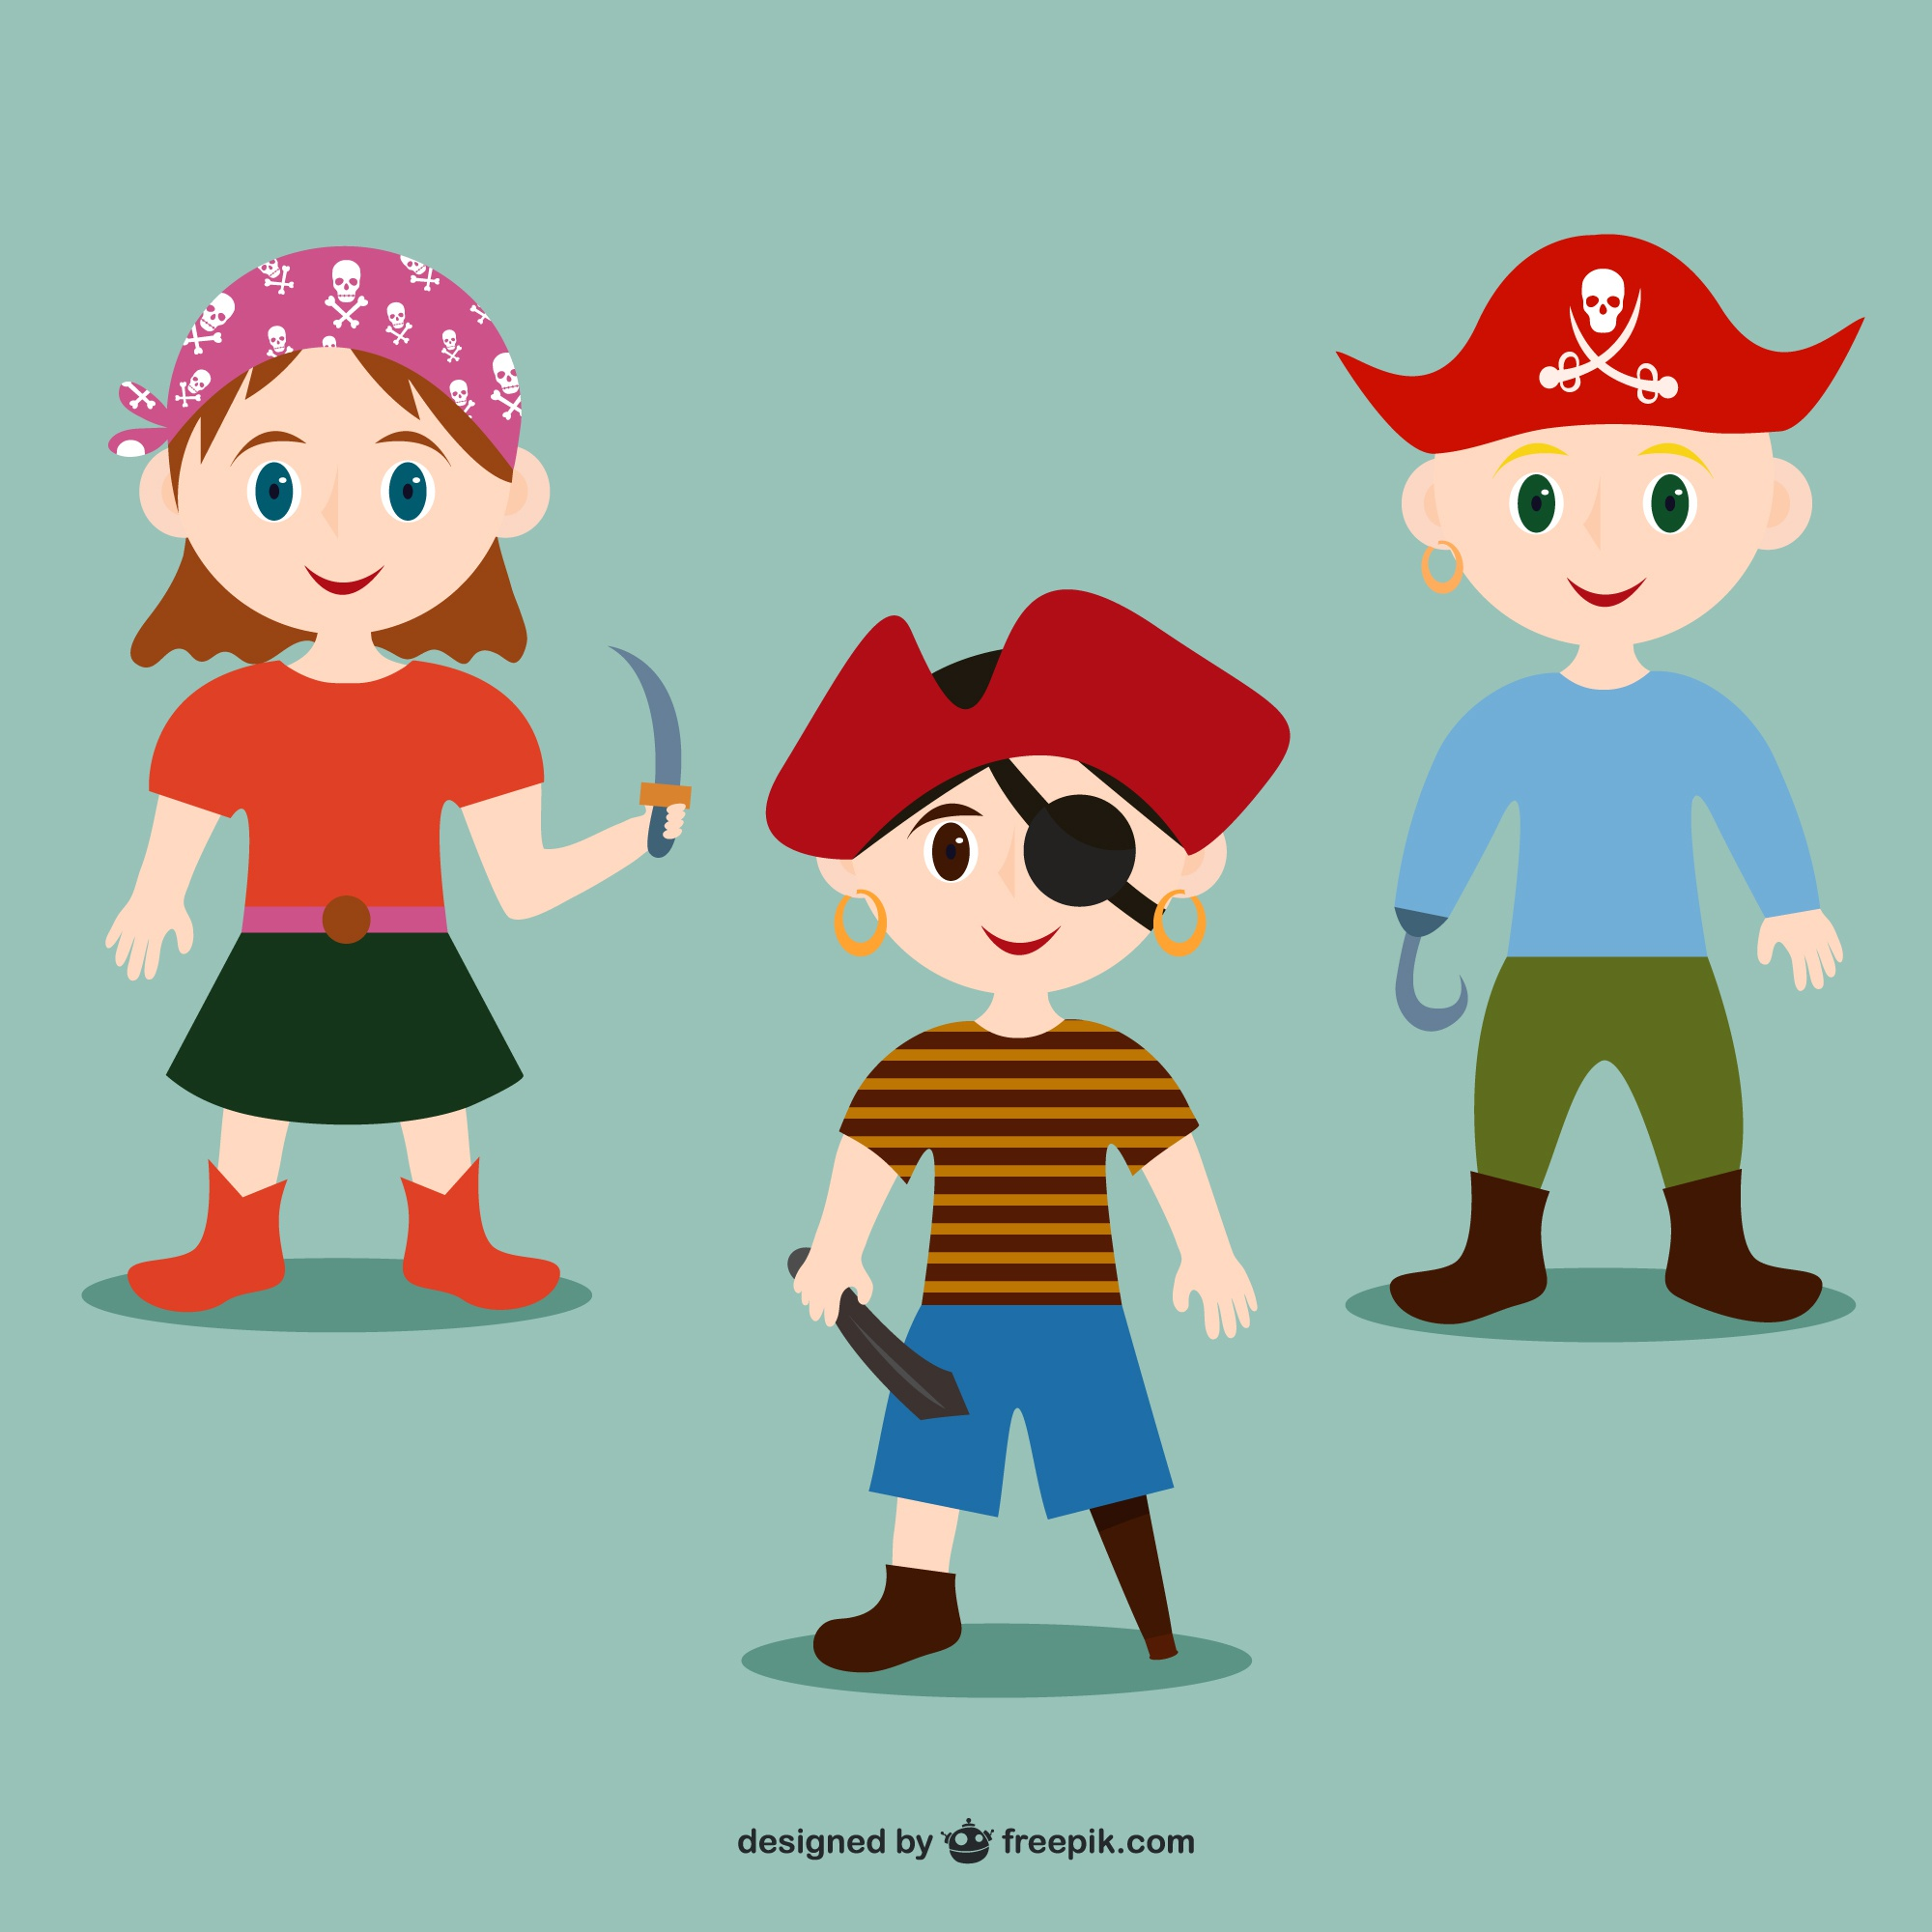 Pirate kids vector illustration